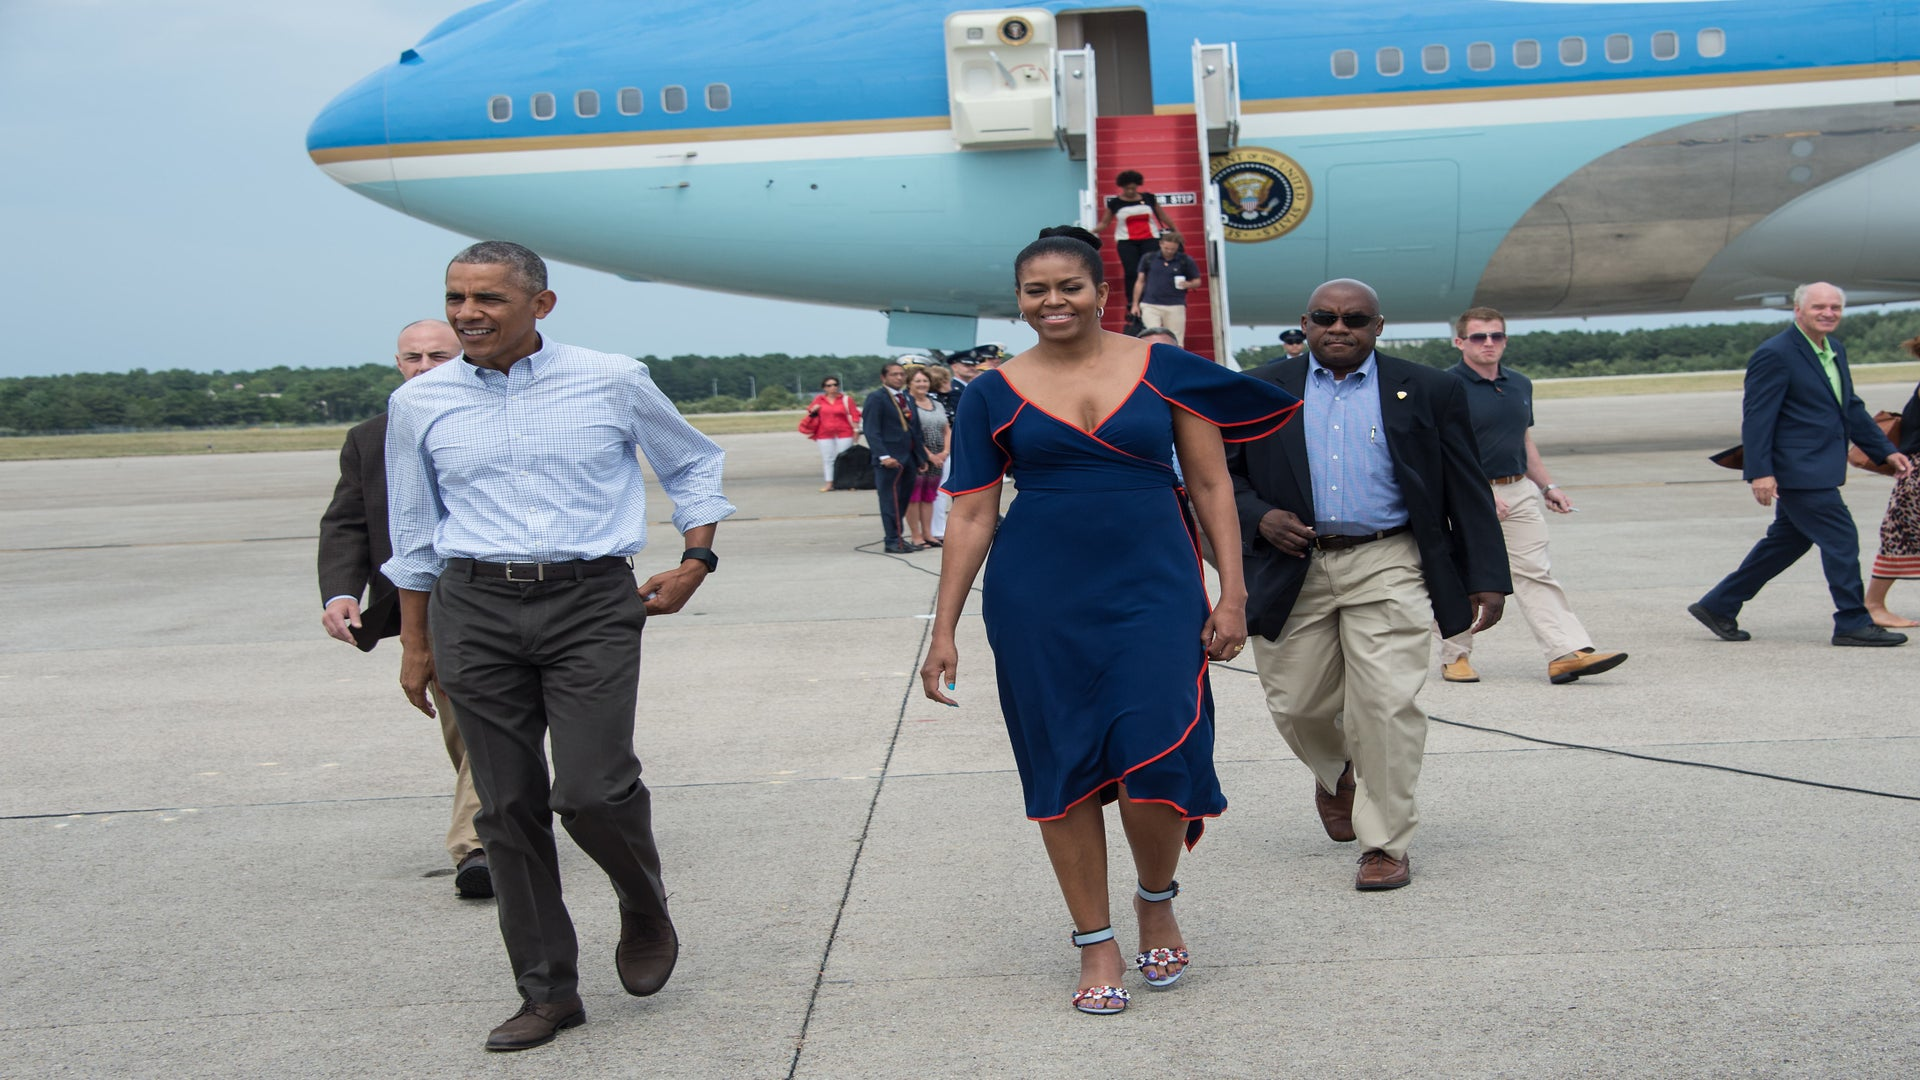 Look of the Day: Michelle Obama is Vacation Style Goals in Tory Burch and Fendi